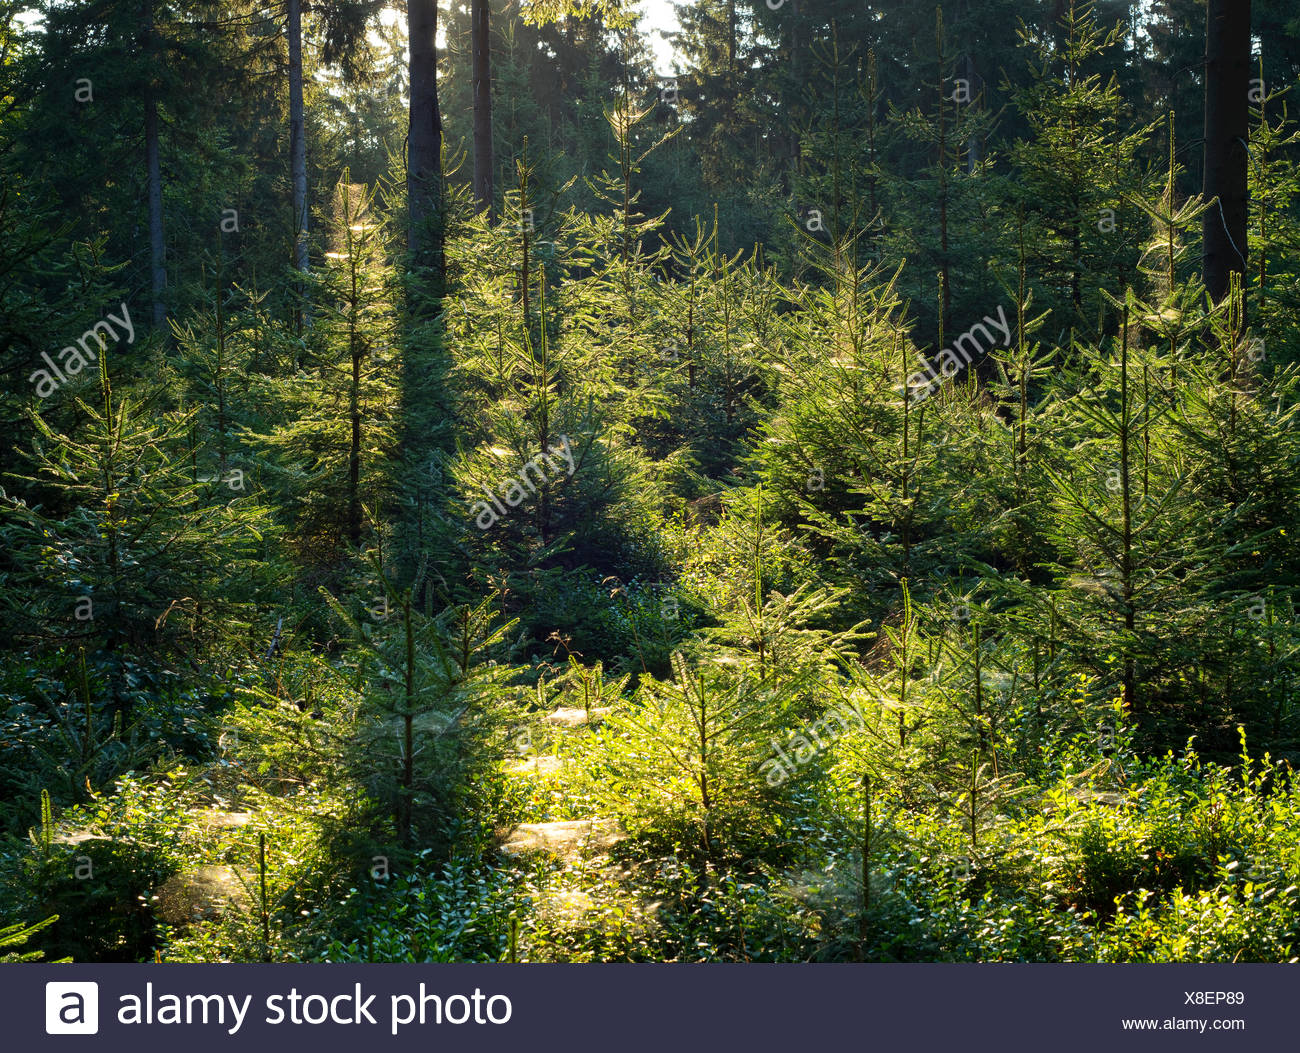 Spruce forest, Norway spruce (Picea abies), backlit, Thuringian Forest, Thuringia, Germany - Stock Image